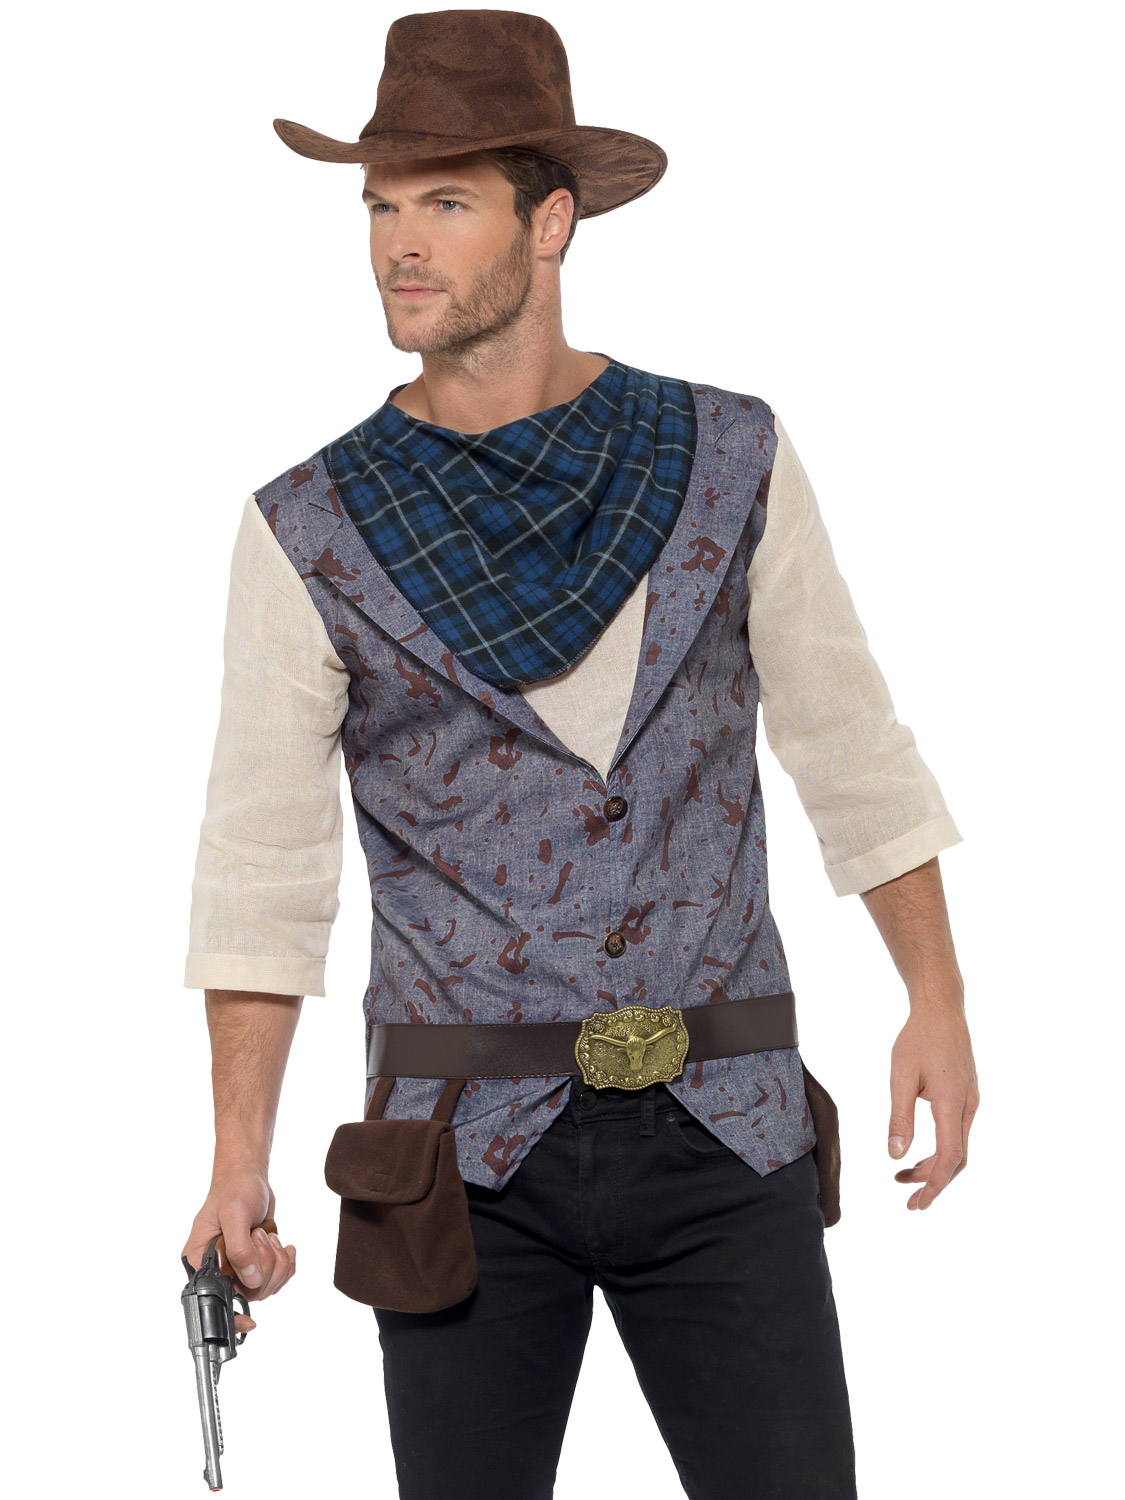 ADULT COWBOY OUTFITS FOR MENS WILD WEST FANCY DRESS PARTY 2 SIZES AVAILABLE